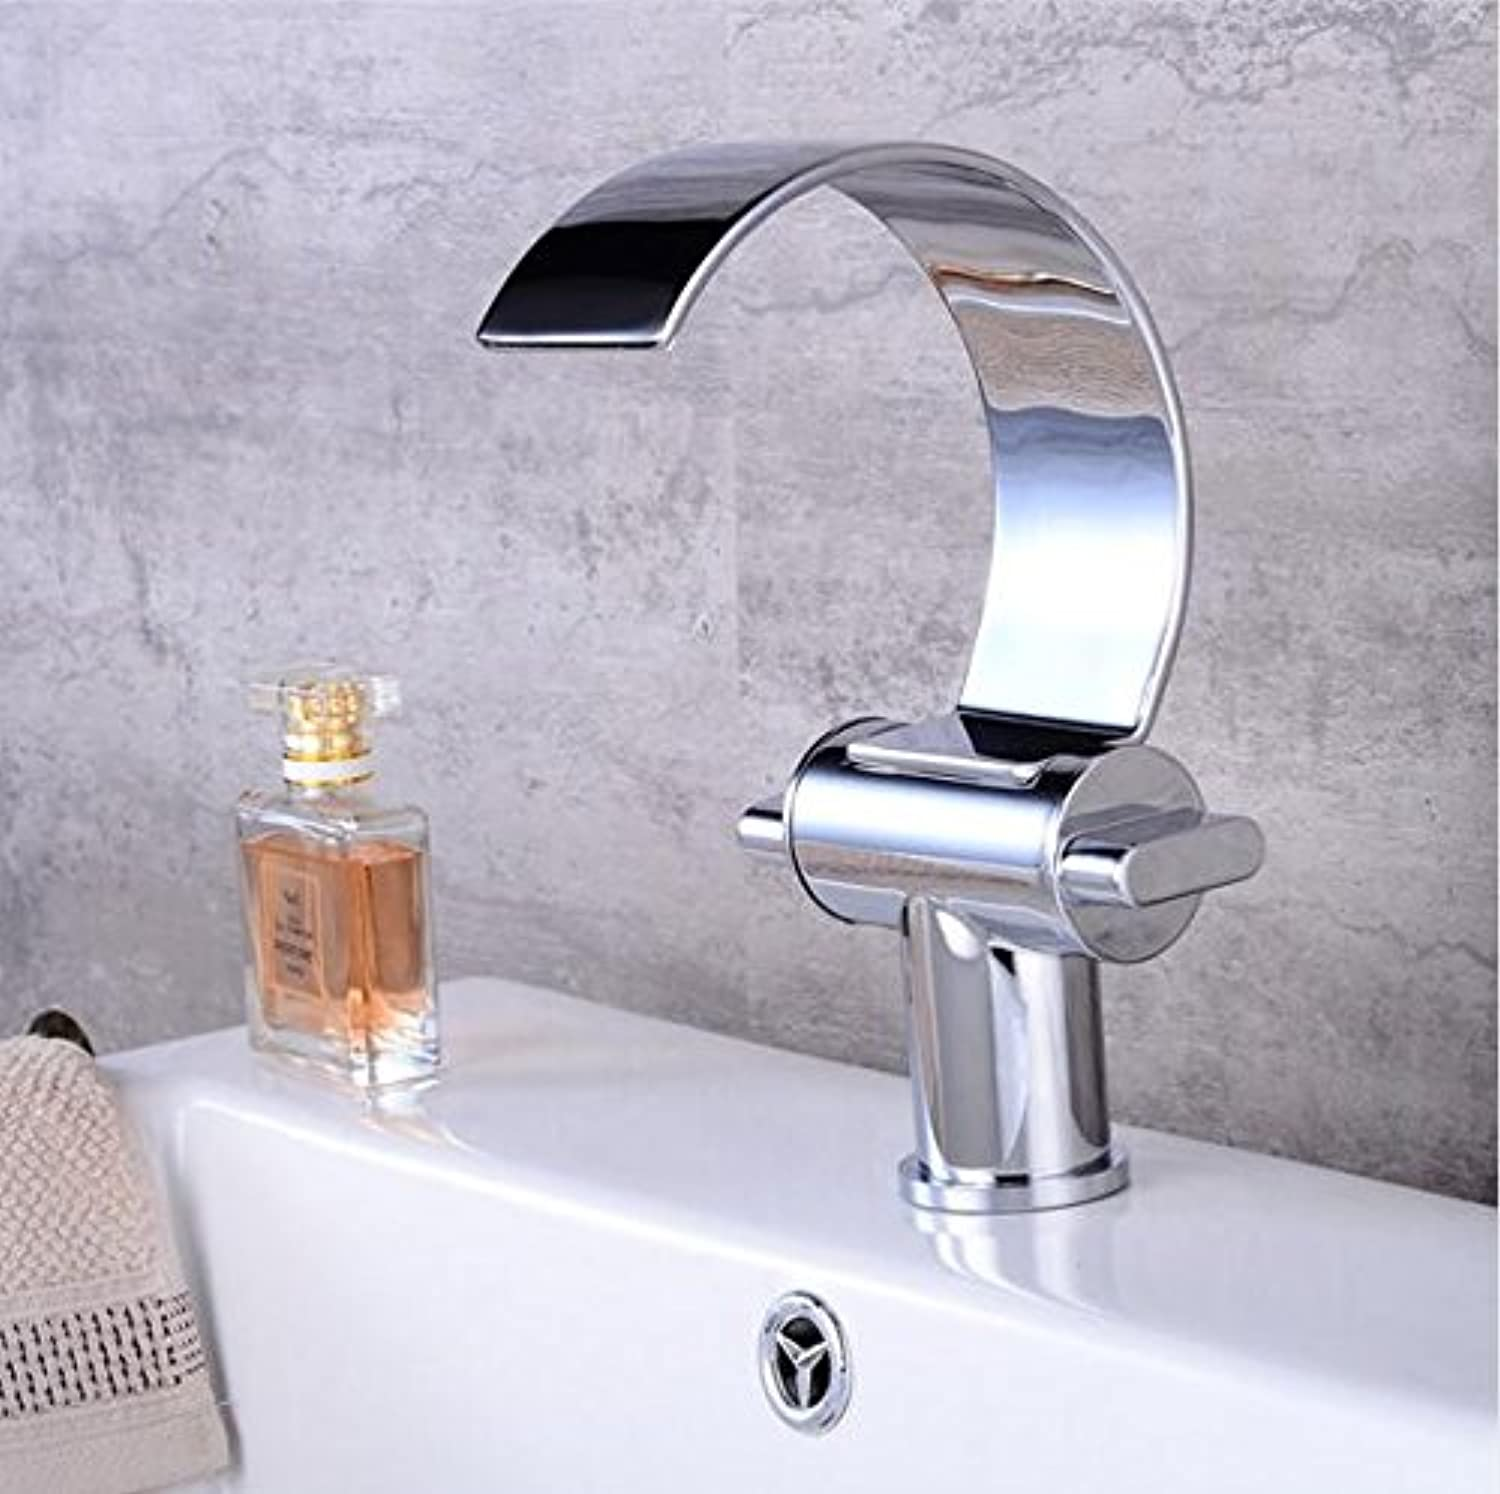 Makej Deck Mount Waterfall Bathroom Faucet Basin Vanity Sink Faucet Waterfall Bathroom Mixer Deck Mounted Tap